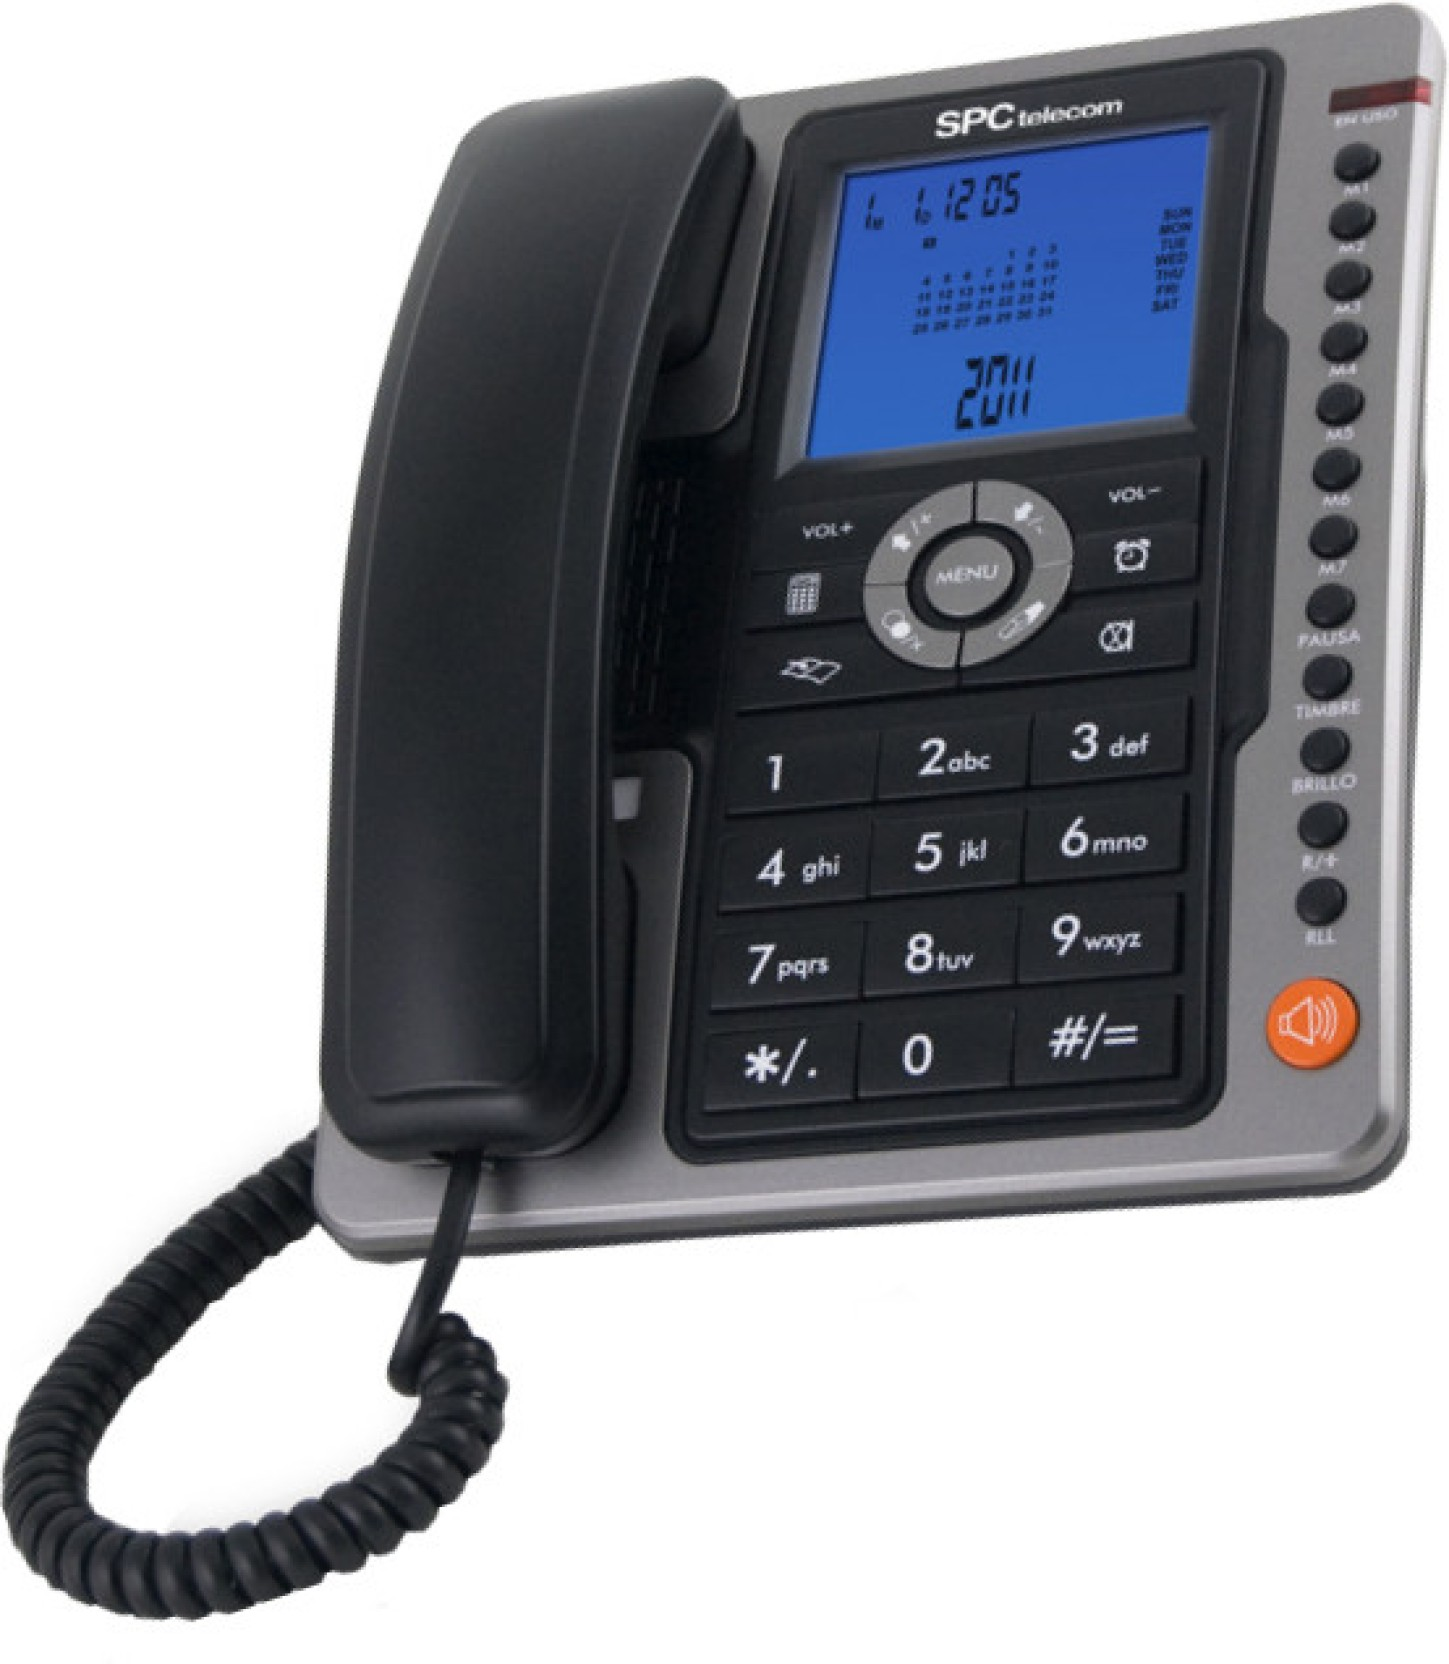 how to call india landline number from uk